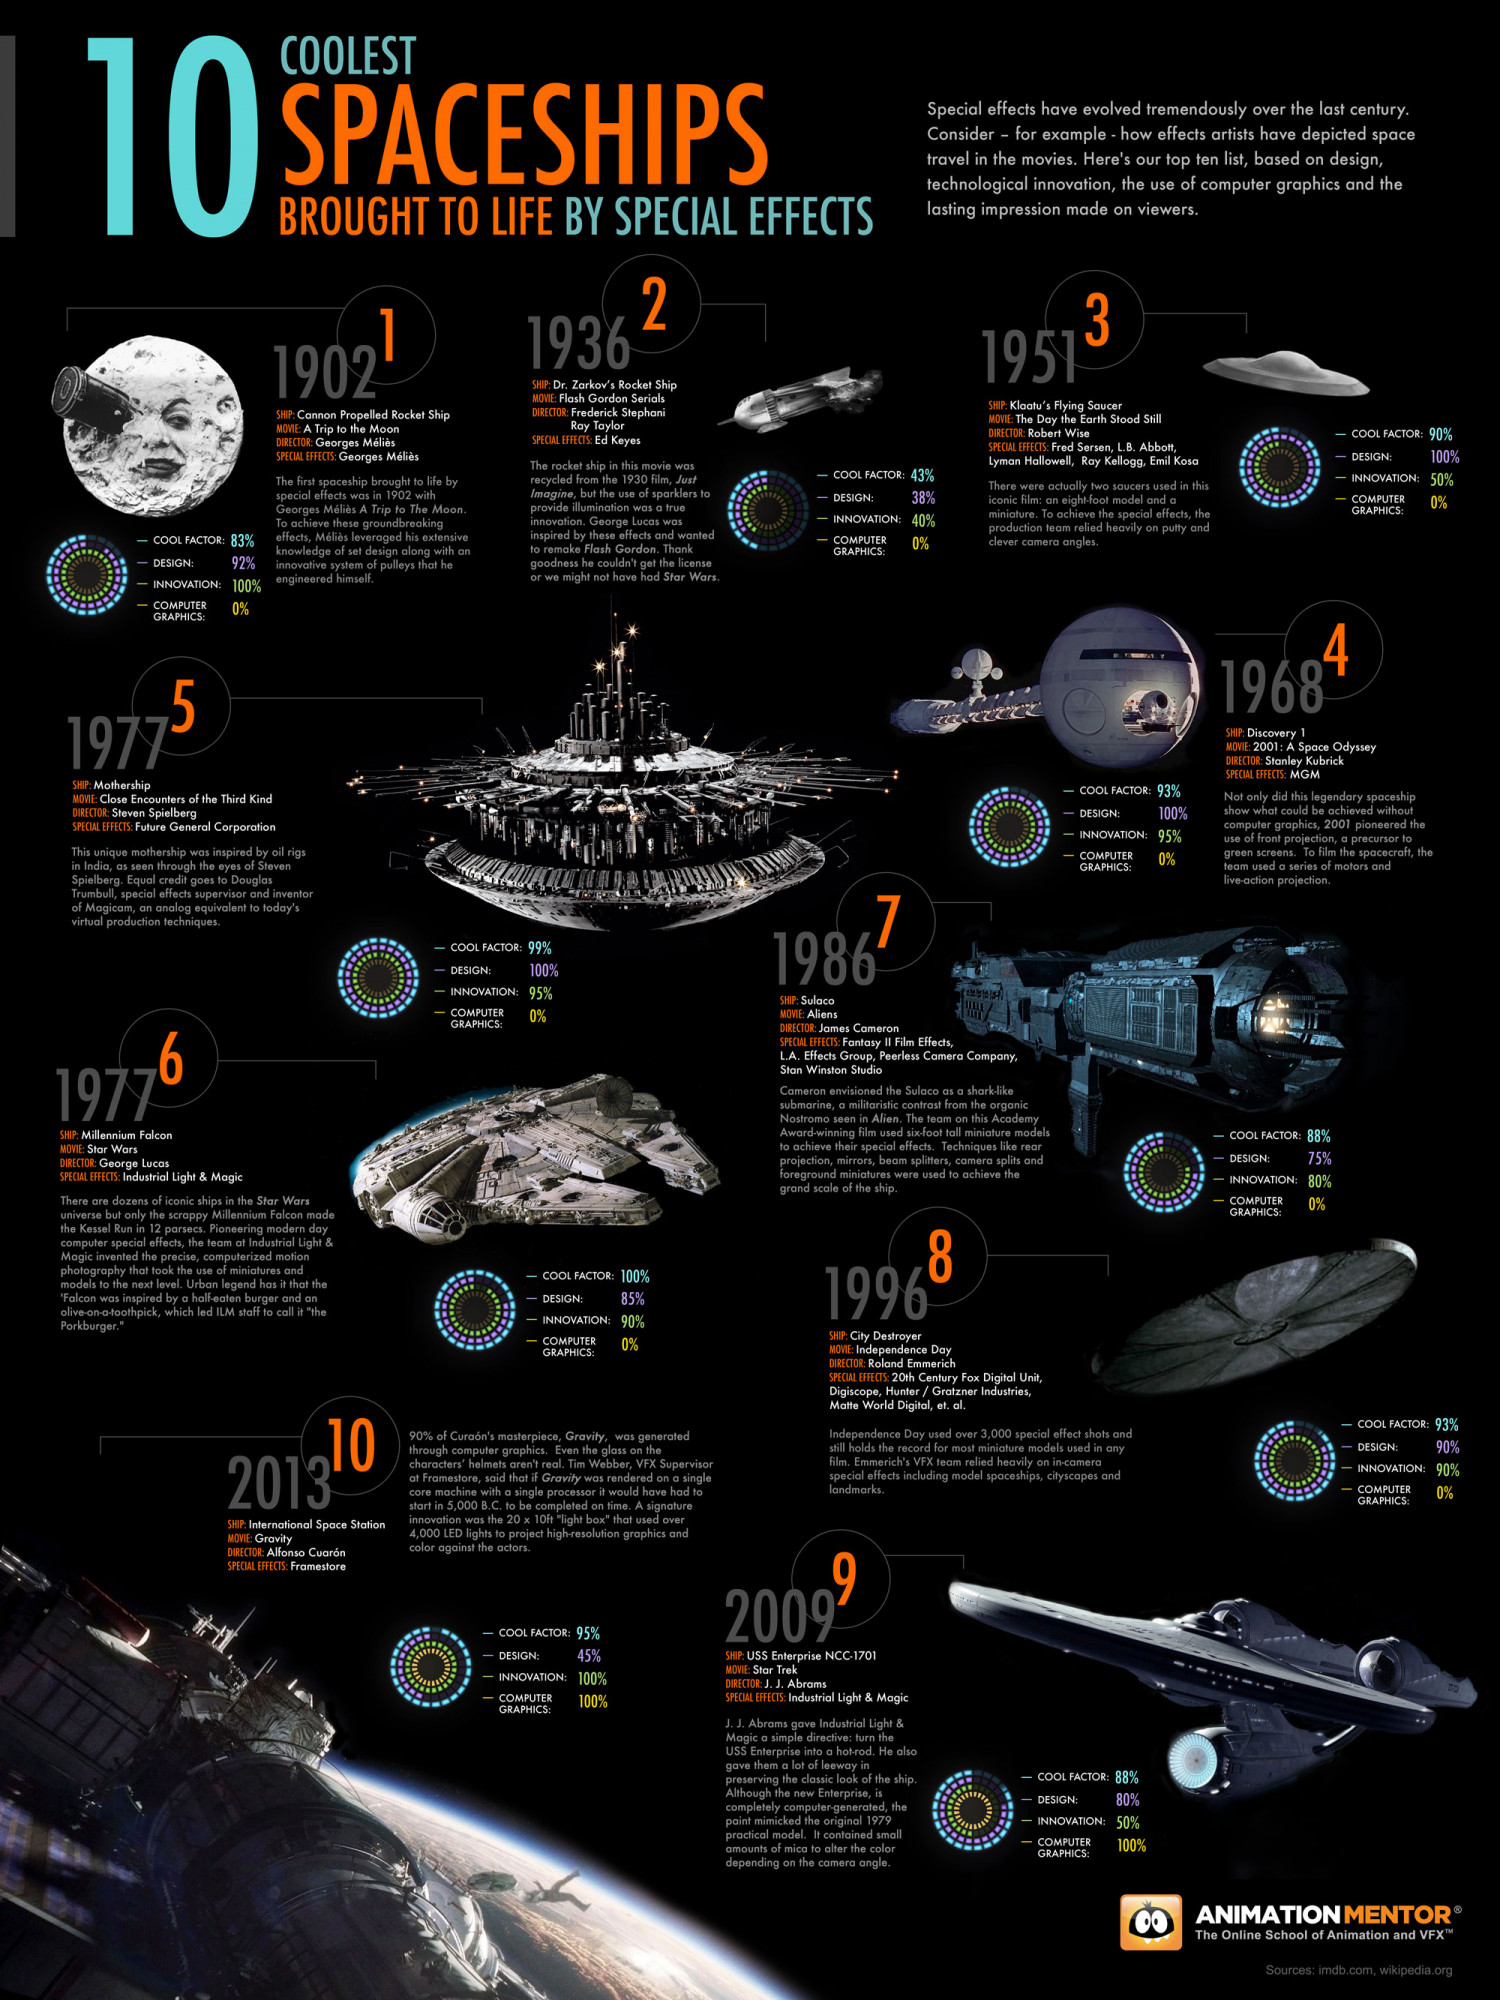 10 coolest spaceships brought to life by special effects triton